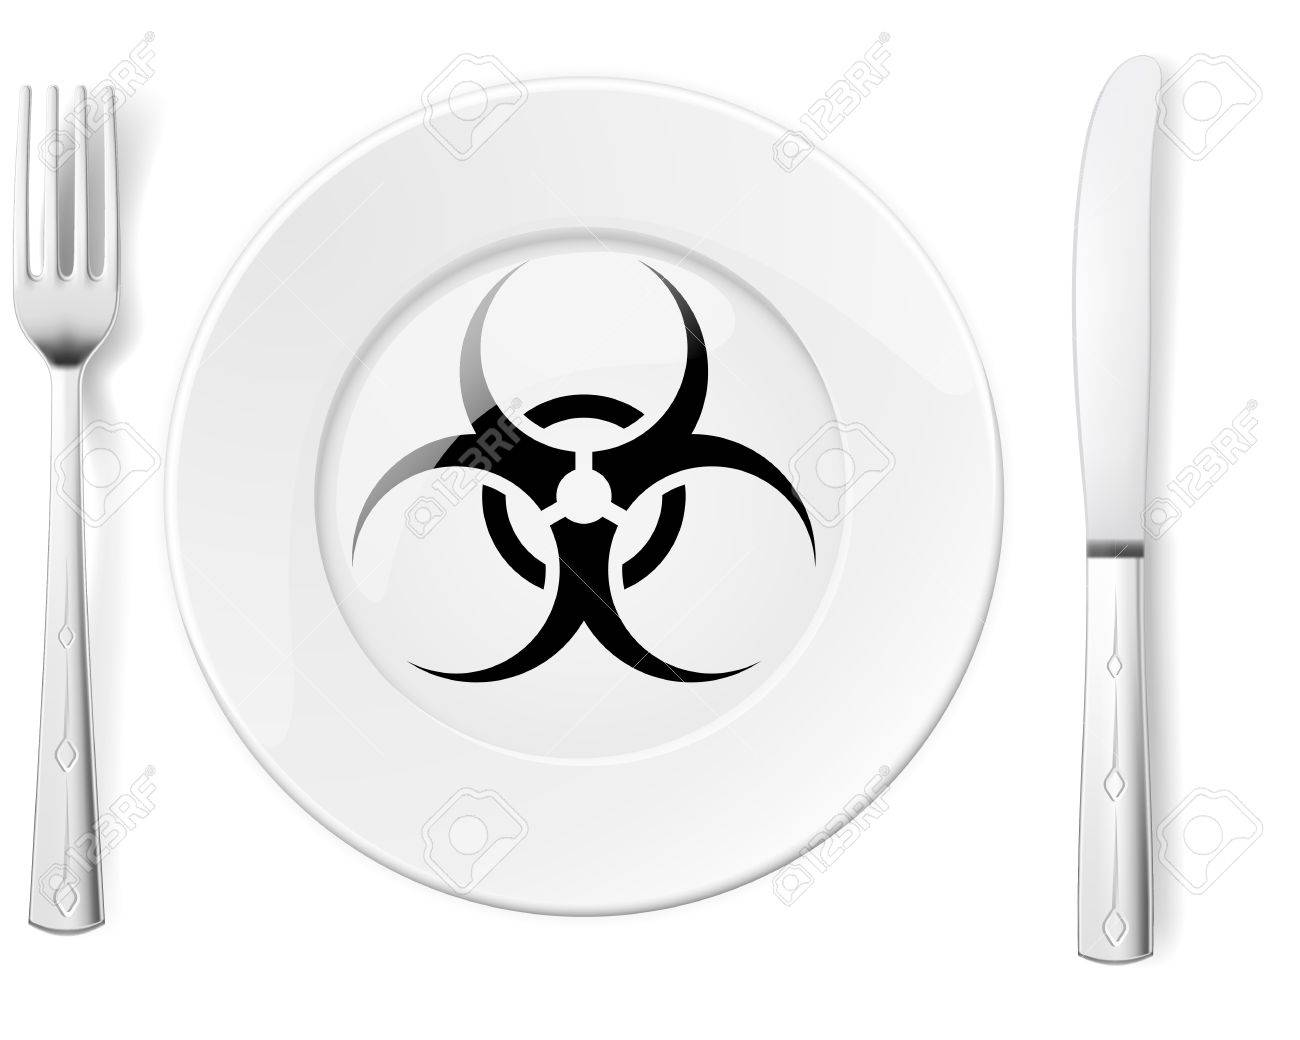 Toxic Symbol Black And White black biohazard Dangerous